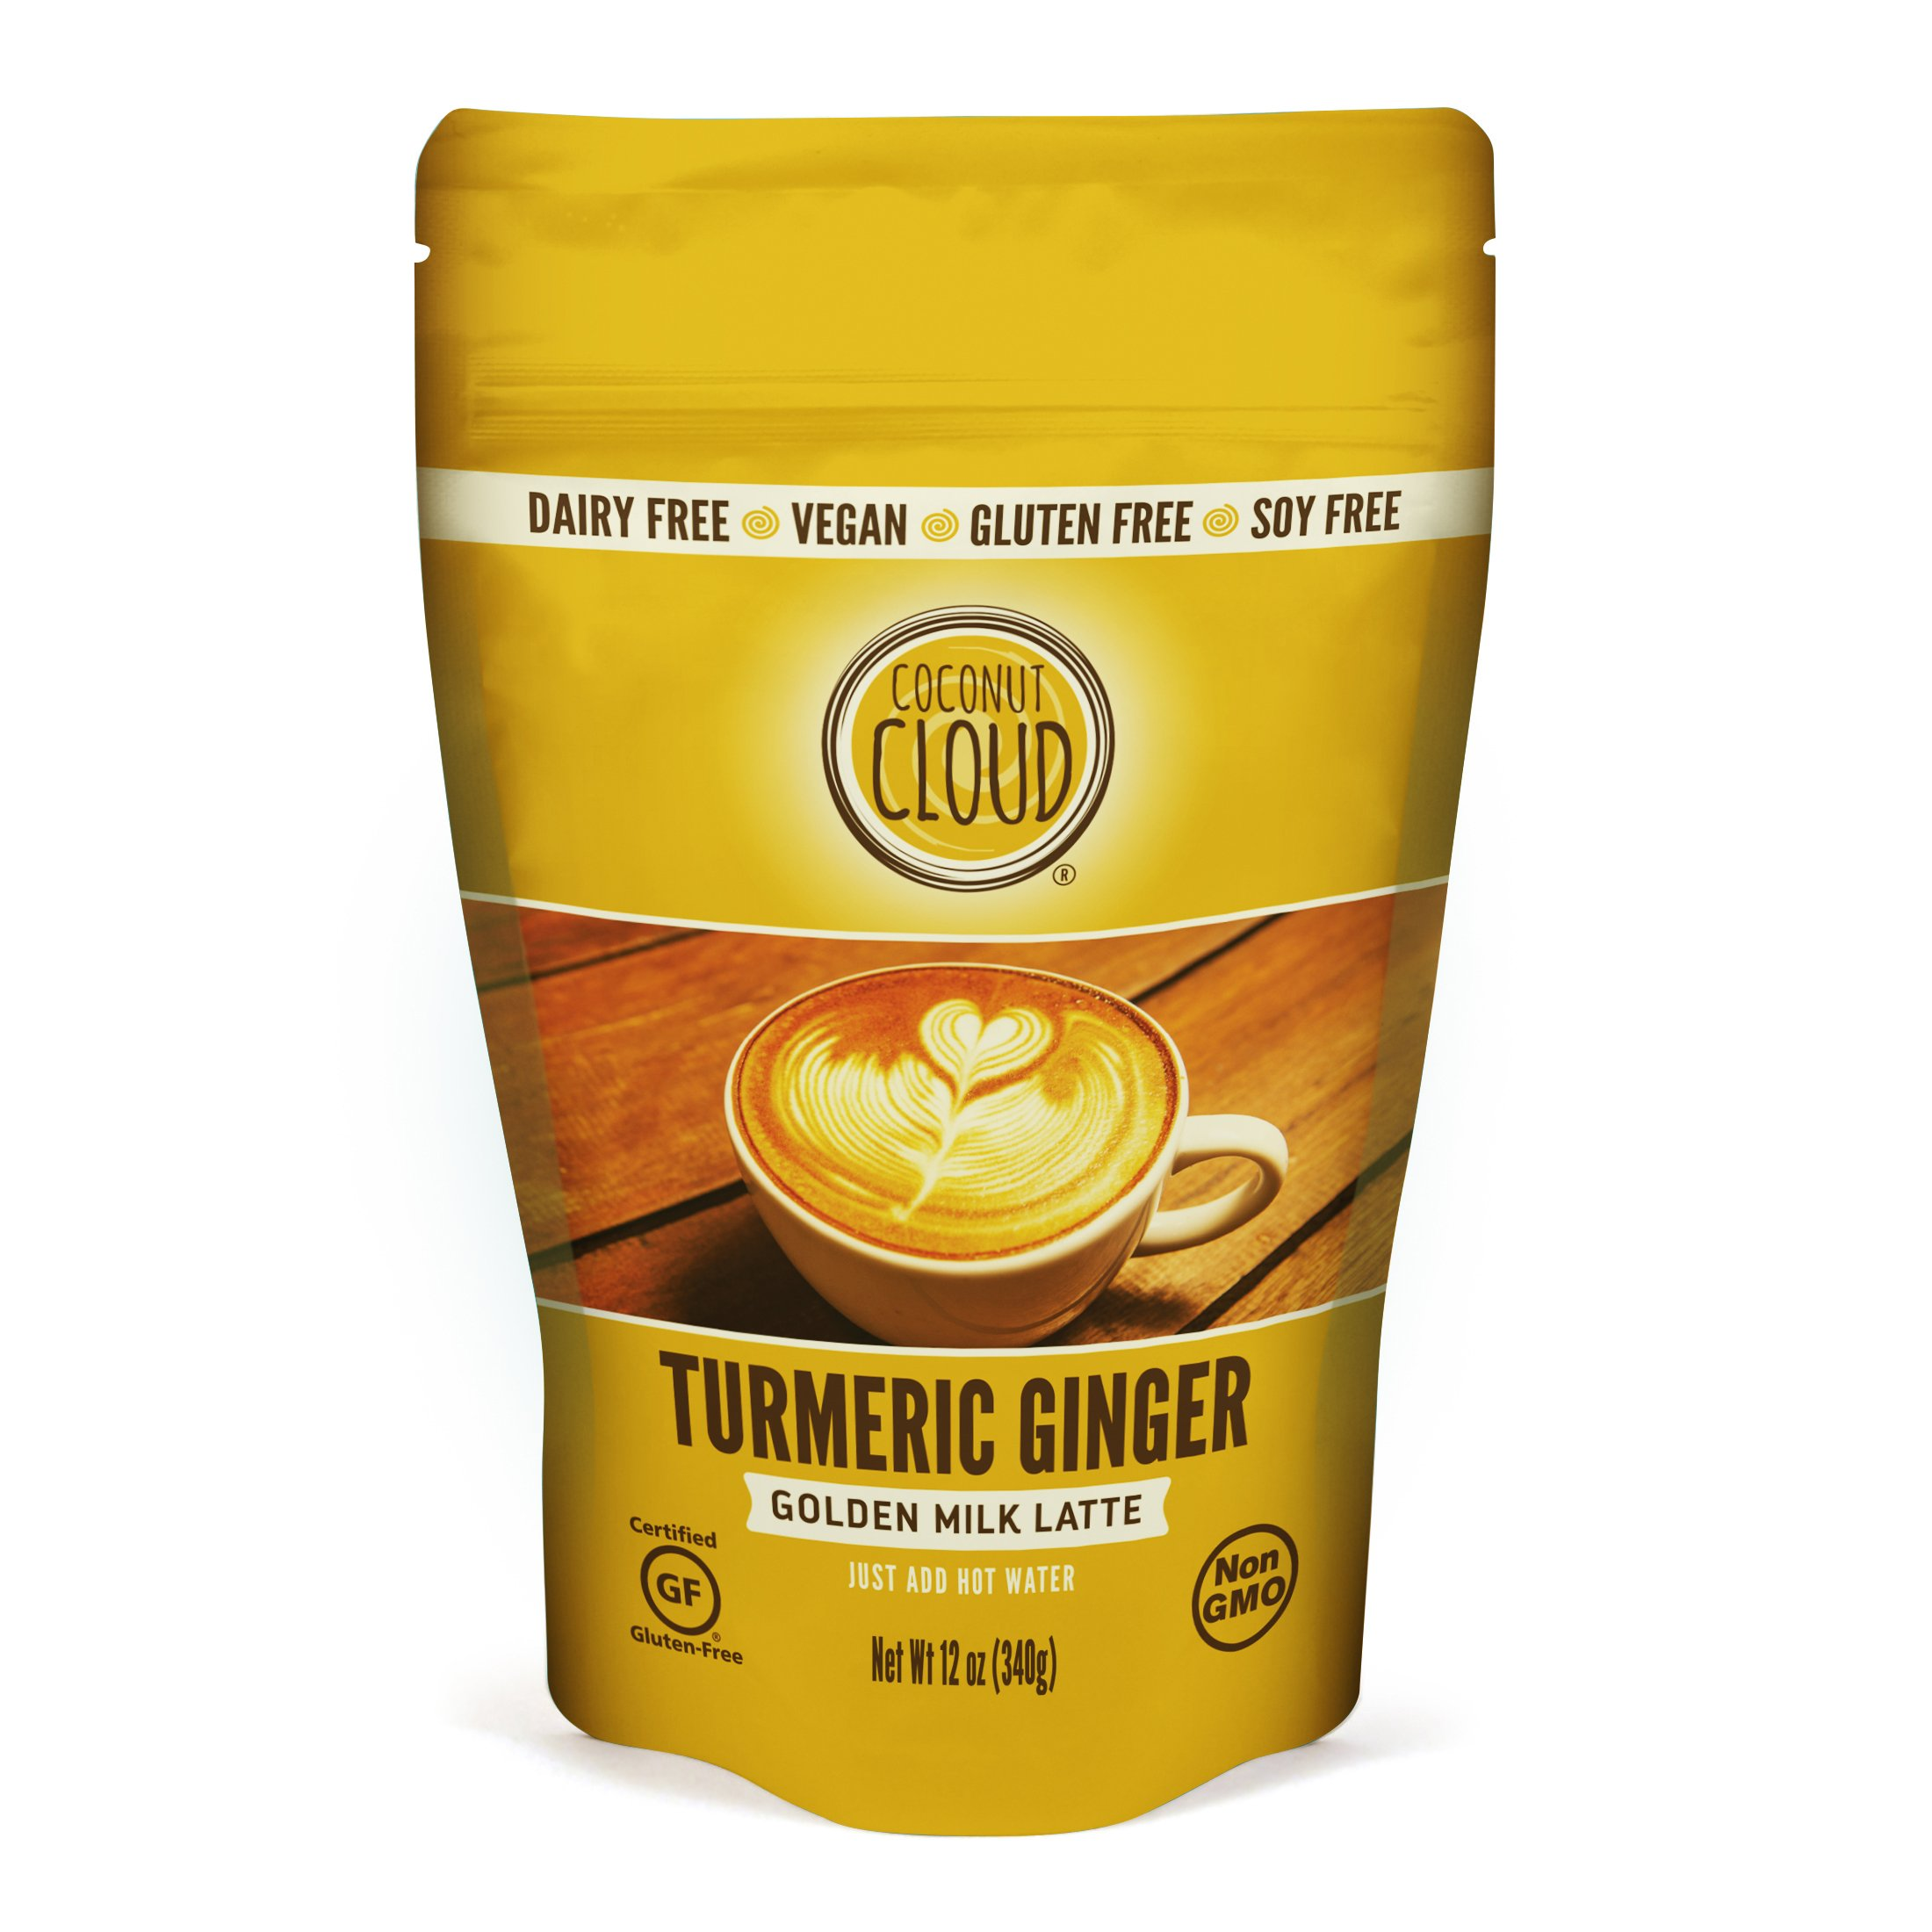 Coconut Cloud: Vegan Turmeric Ginger Golden Milk Latte | Delicious & Creamy Coconut Milk Powder. Dairy & Soy Free, GF, Non-GMO (Just add hot water, 21 Servings! Use in smoothies & recipes too), 12 oz